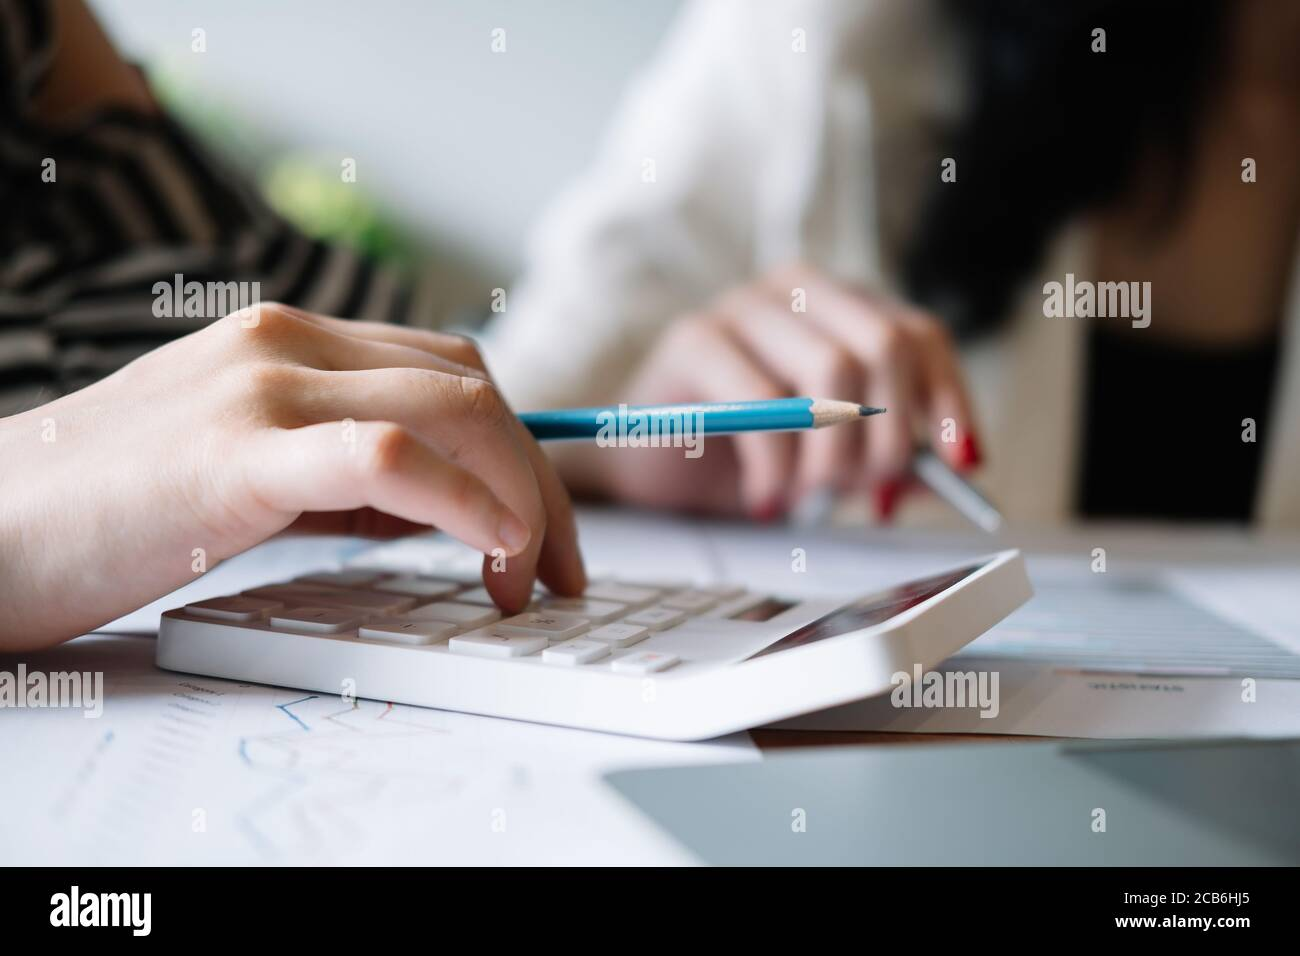 Closeup business people using calculator for calculate business data report in the office Stock Photo